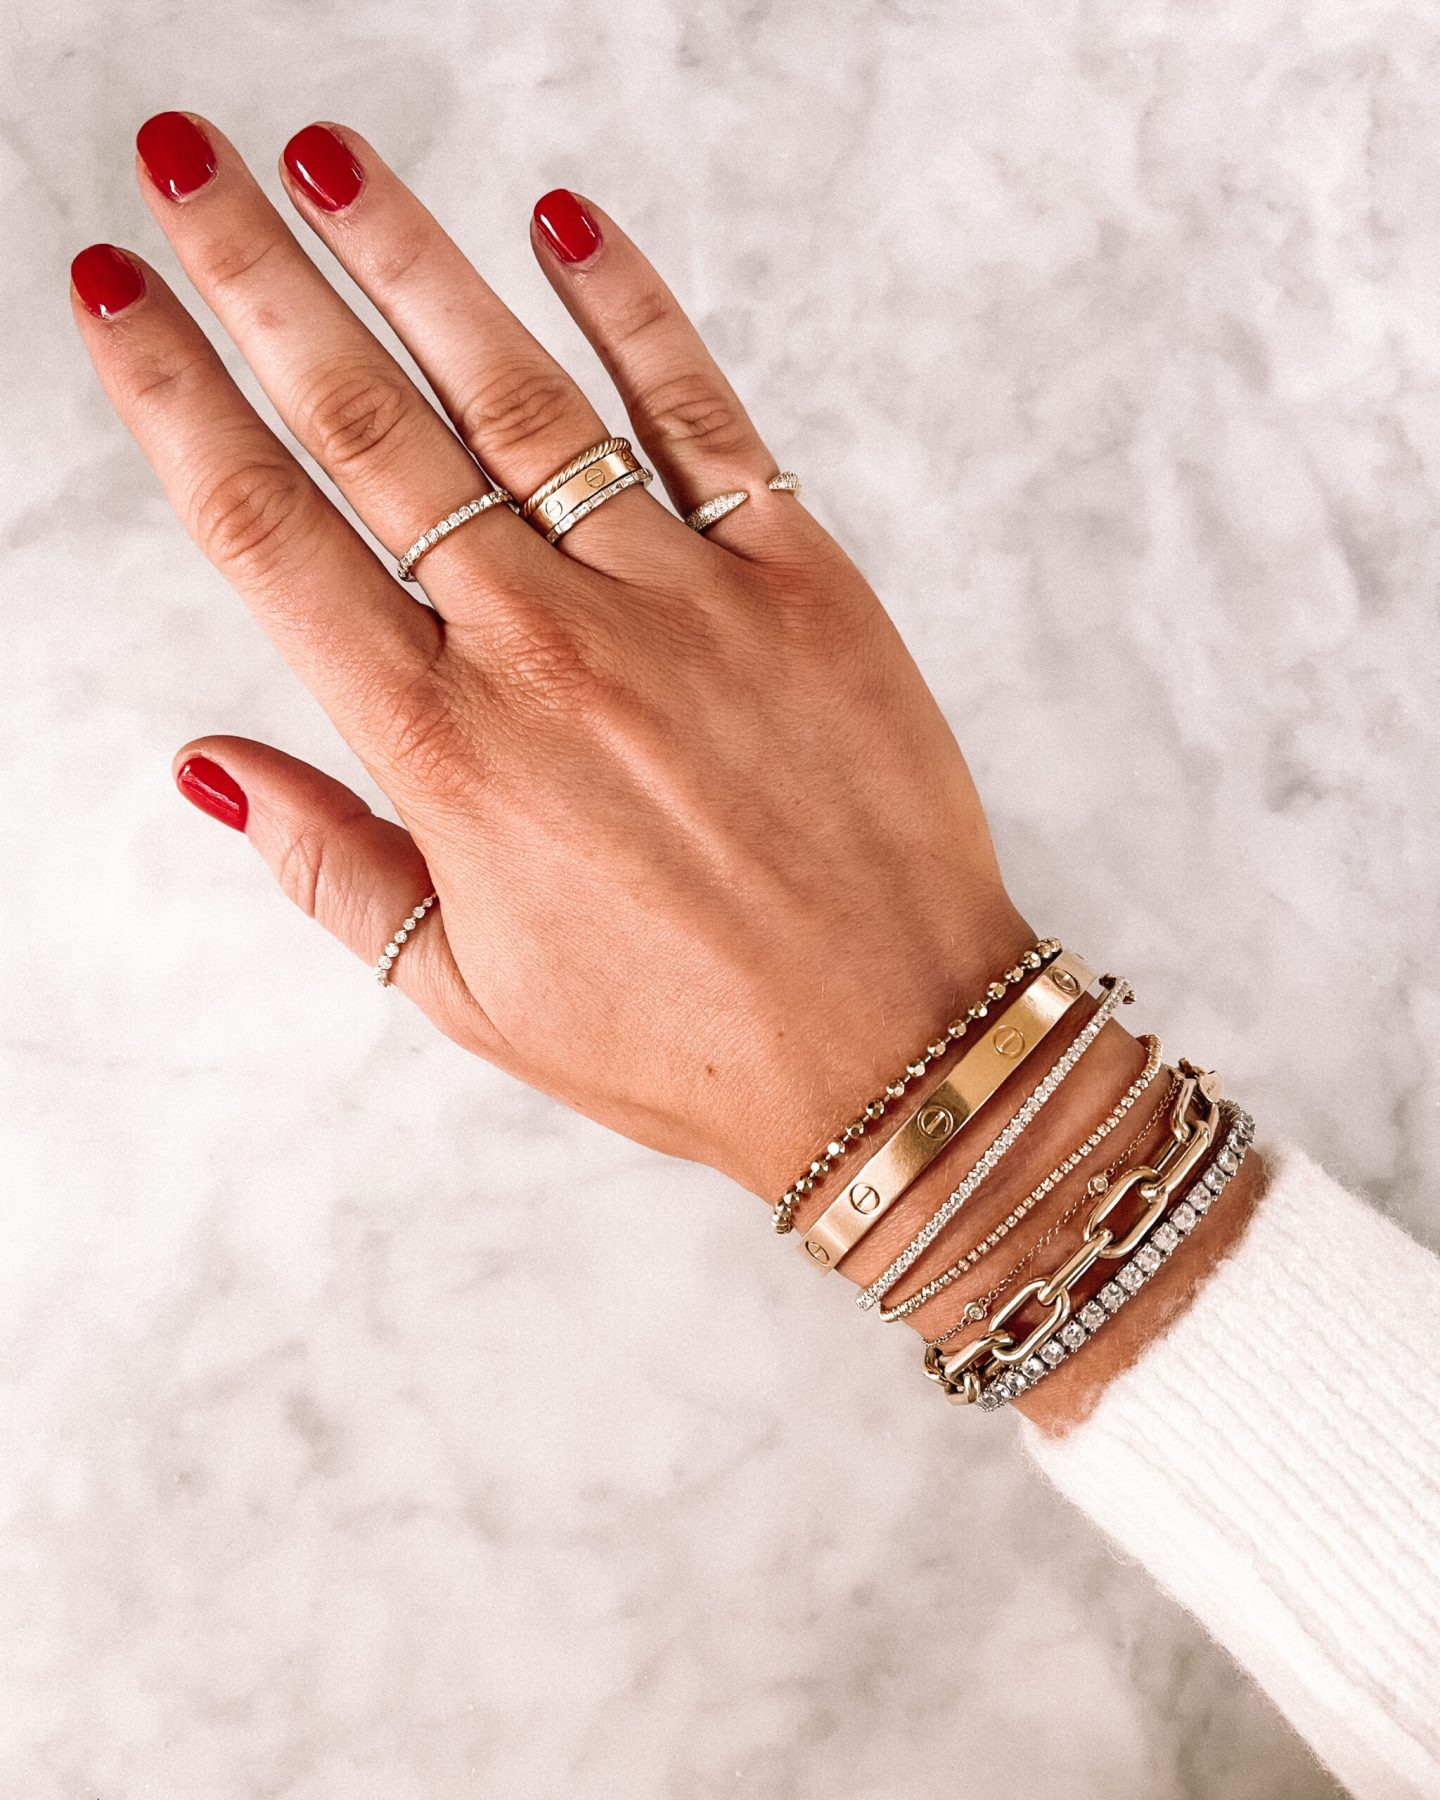 Cartier Love Ring and Bracelet styled on hand